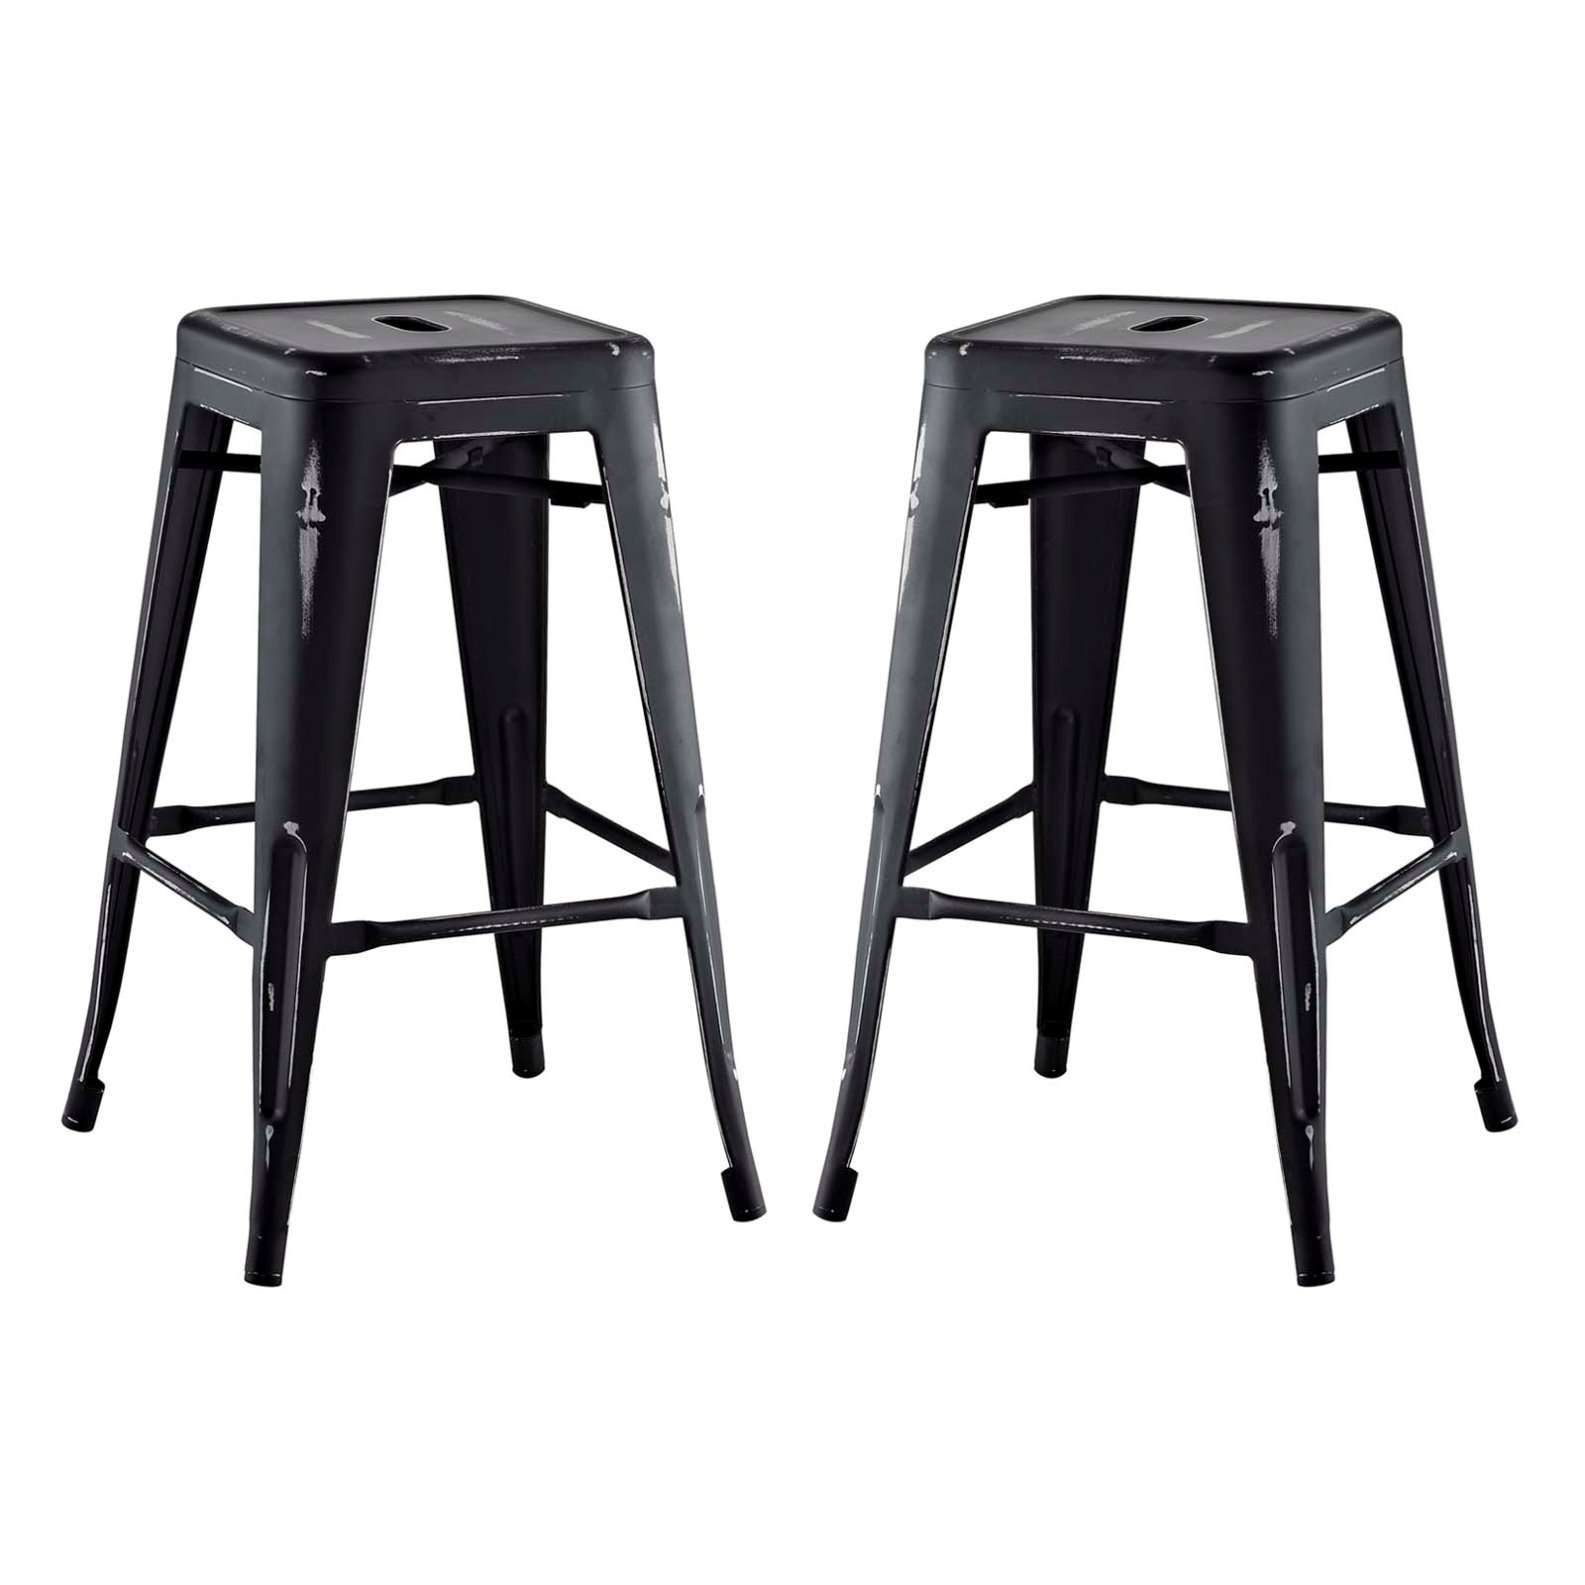 Modern Urban Industrial Distressed Antique Vintage Counter Stool Chair ( Set of 2), Black, Metal